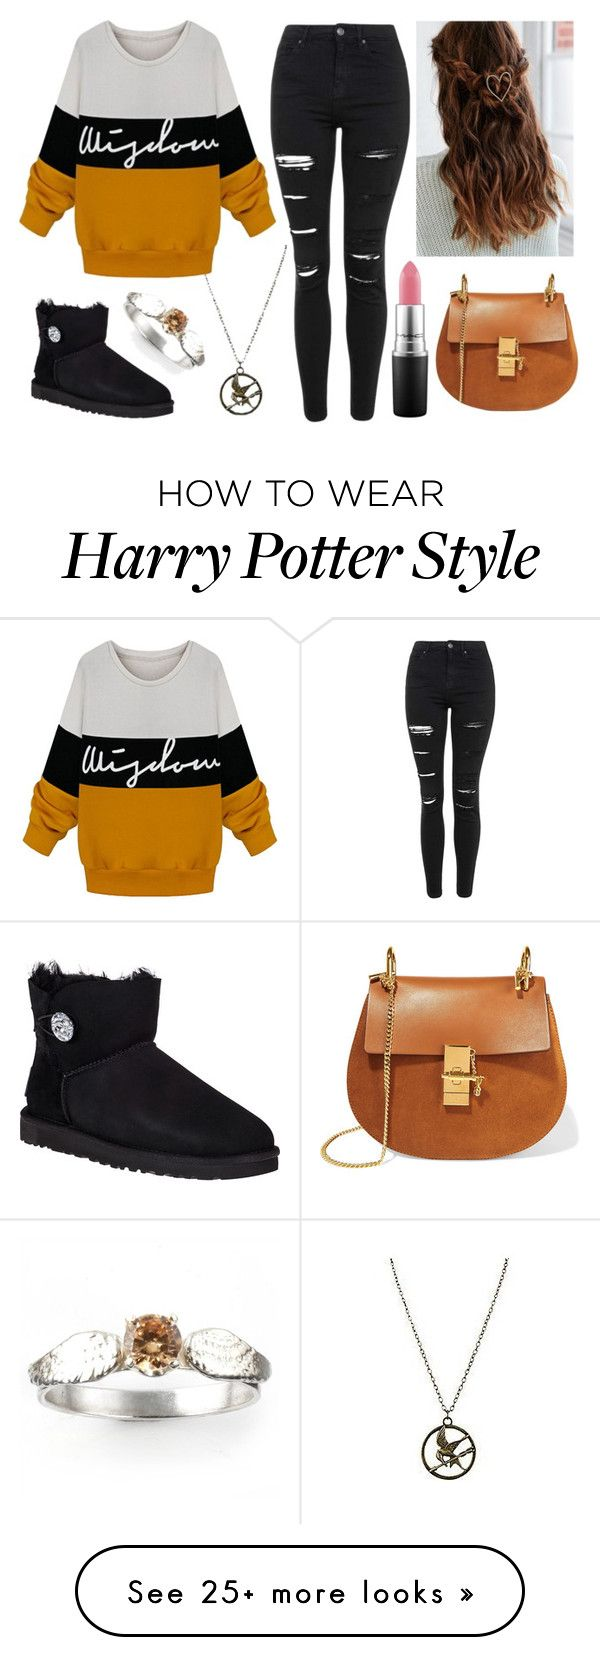 """Sin título #233"" by abigail-15-love on Polyvore featuring UGG Australia, Topshop, Chloé, MAC Cosmetics, women's clothing, women, female, woman, misses and juniors"